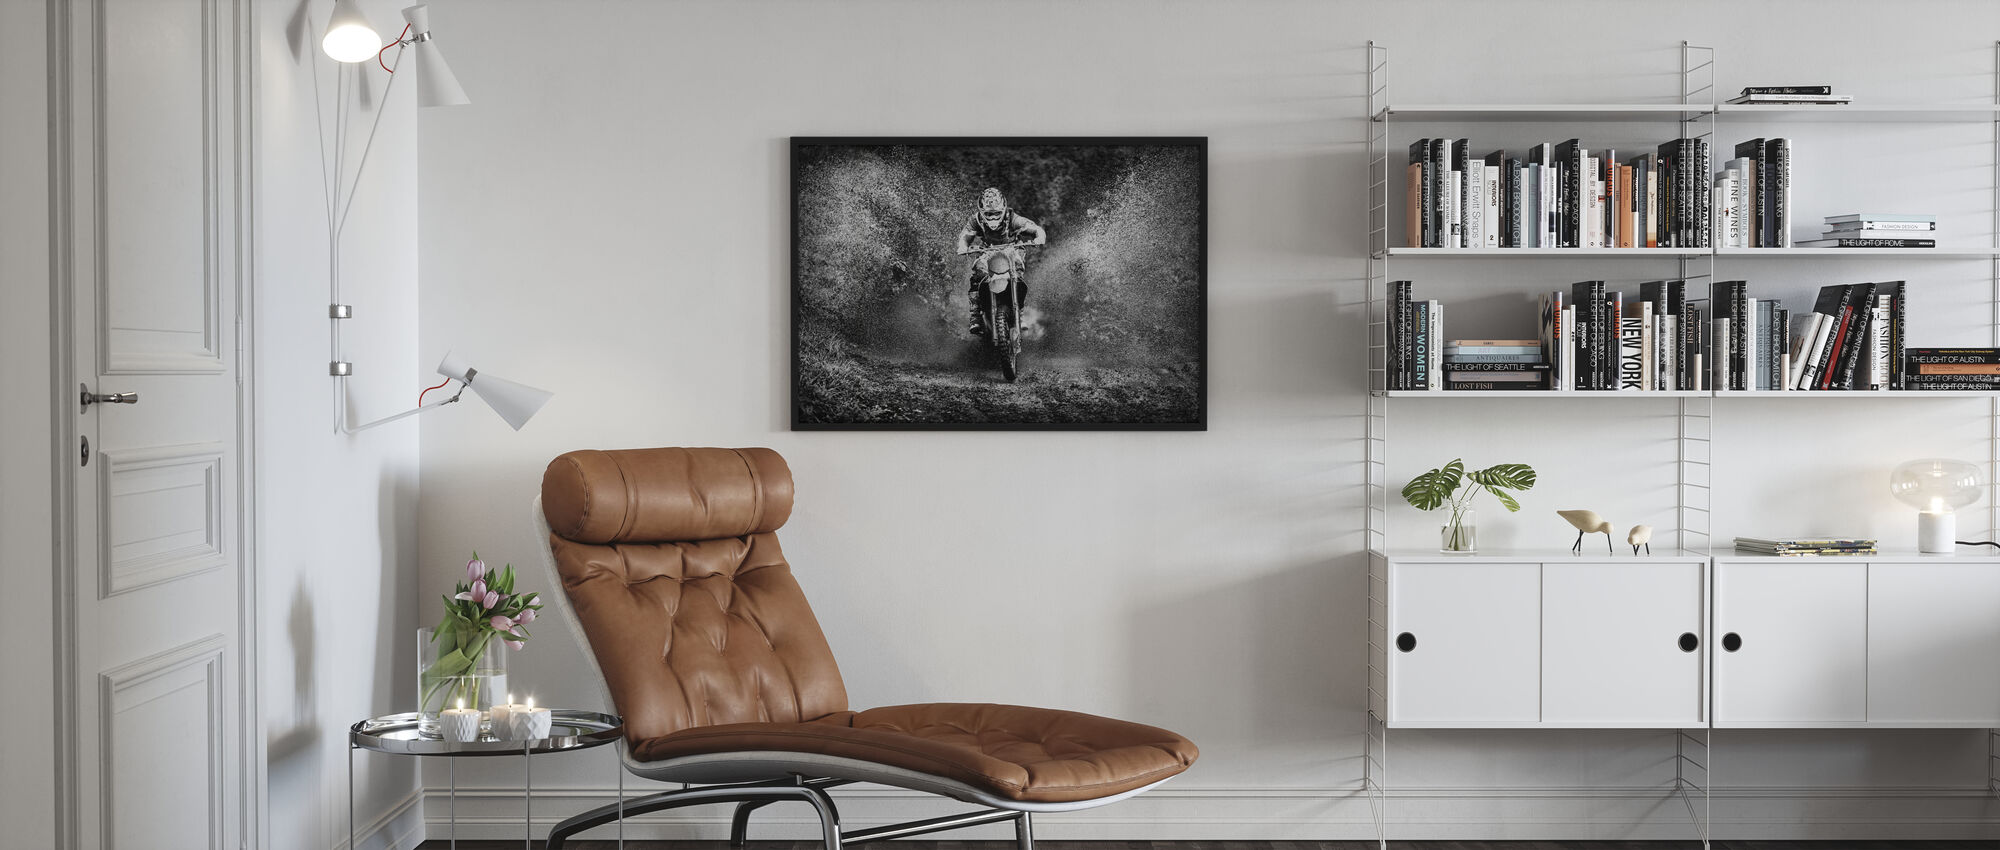 Spray Mud Motorcycle, black and white - Framed print - Living Room